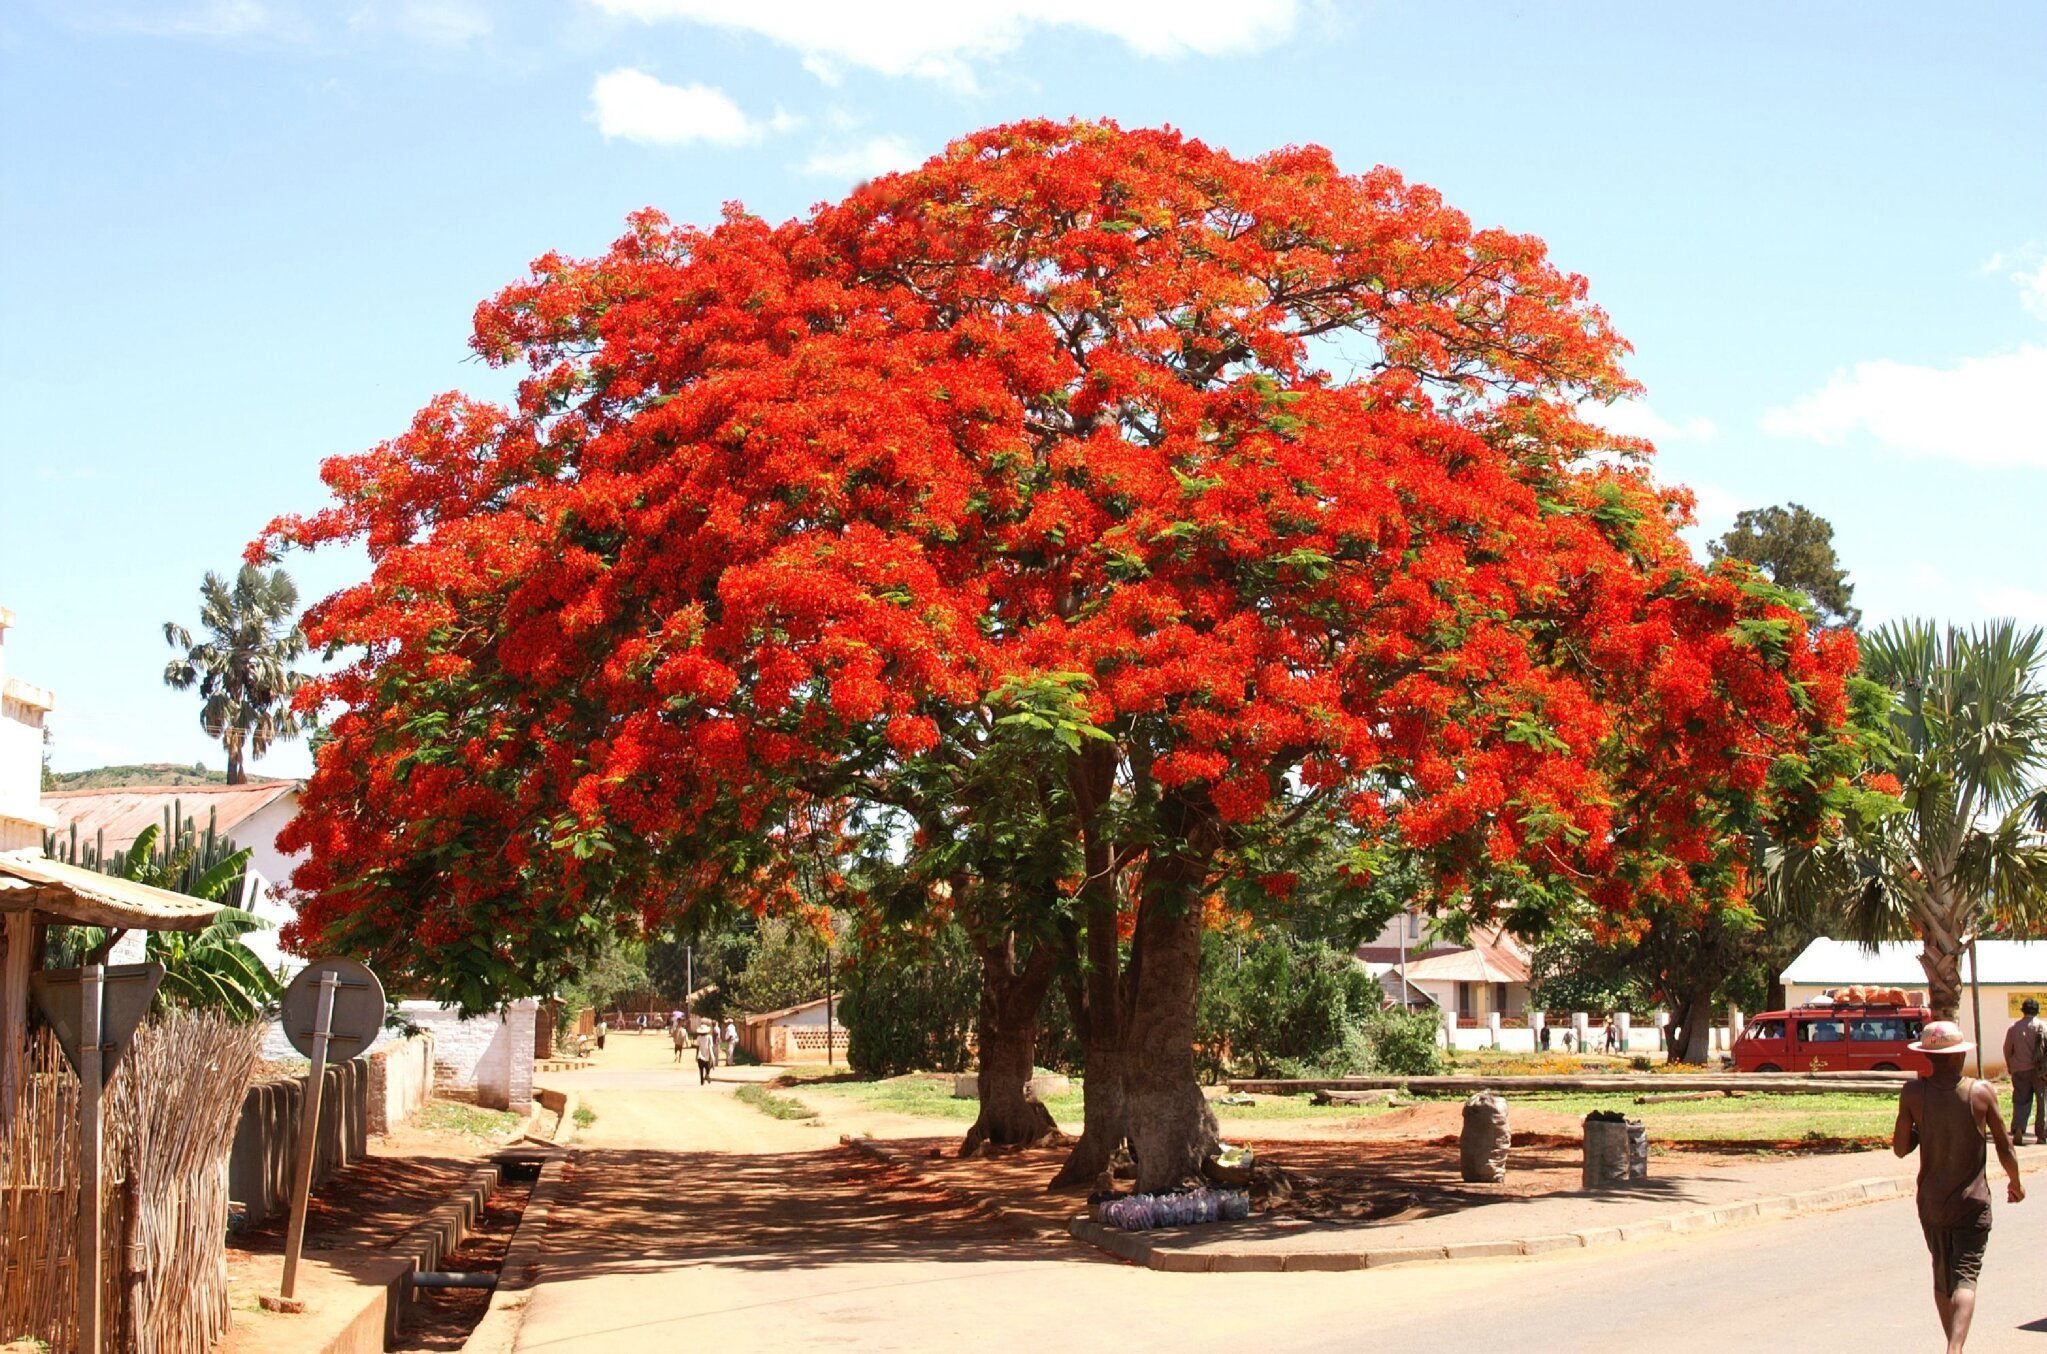 Flamboyant malgache photo de madagascar le blog d 39 albatros for Arboles ornamentales para jardin